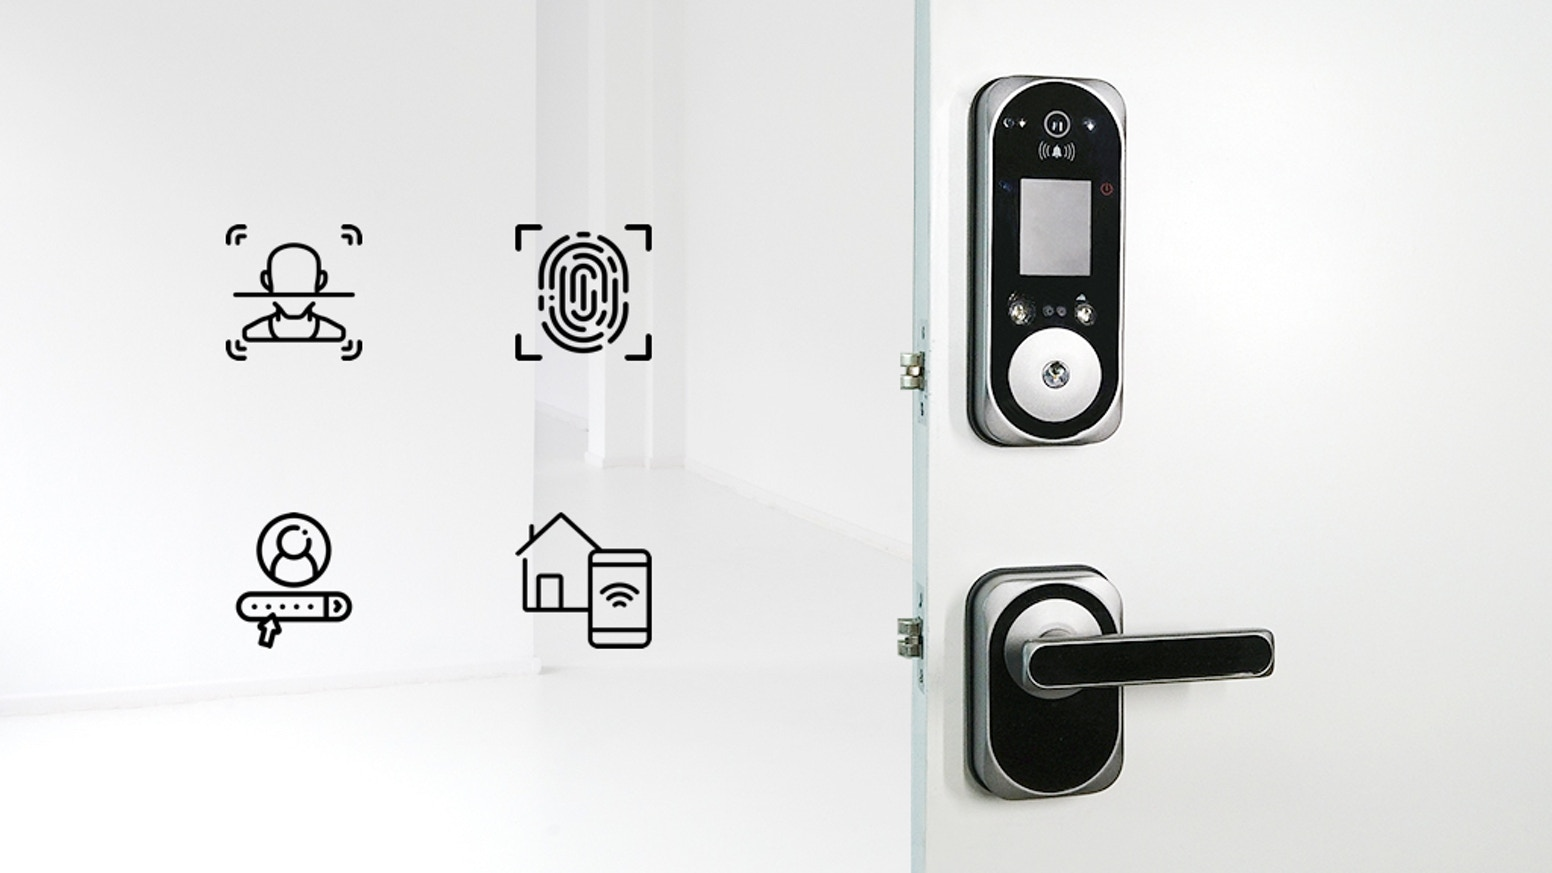 US:E - Camera Equipped Smart Lock with Facial Recognition